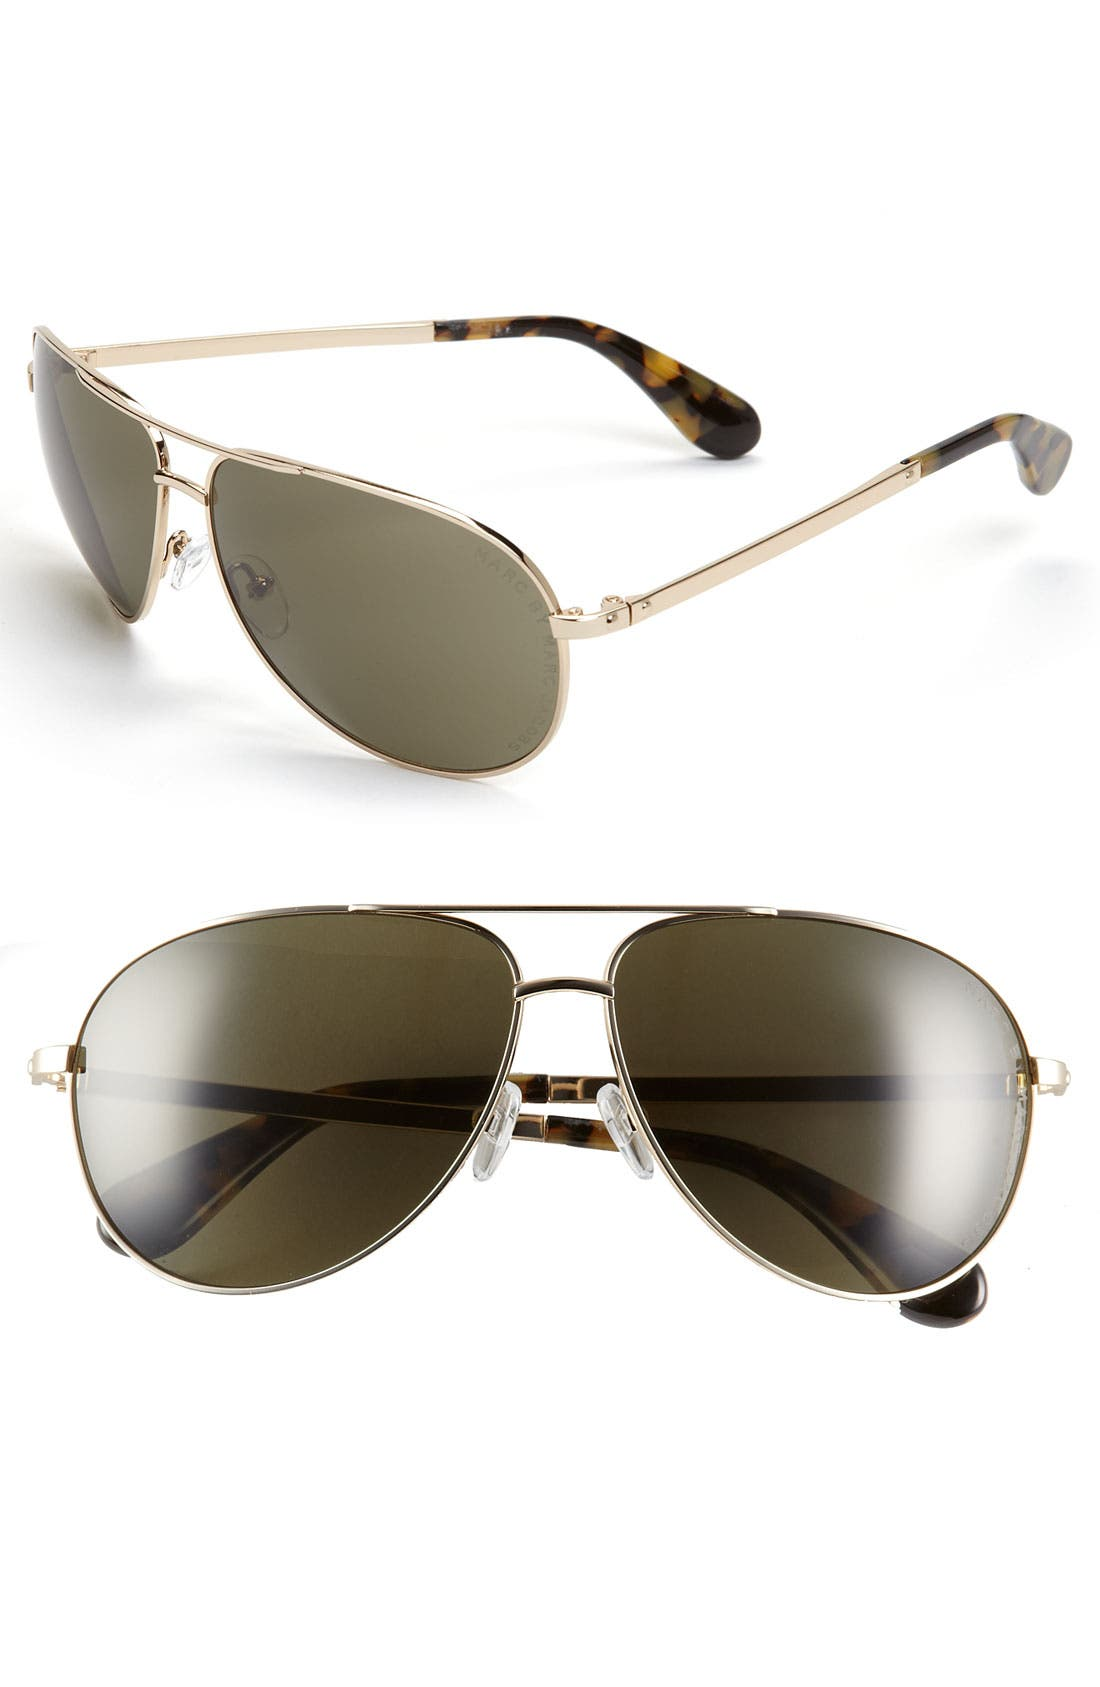 Main Image - MARC BY MARC JACOBS 62mm Aviator Sunglasses